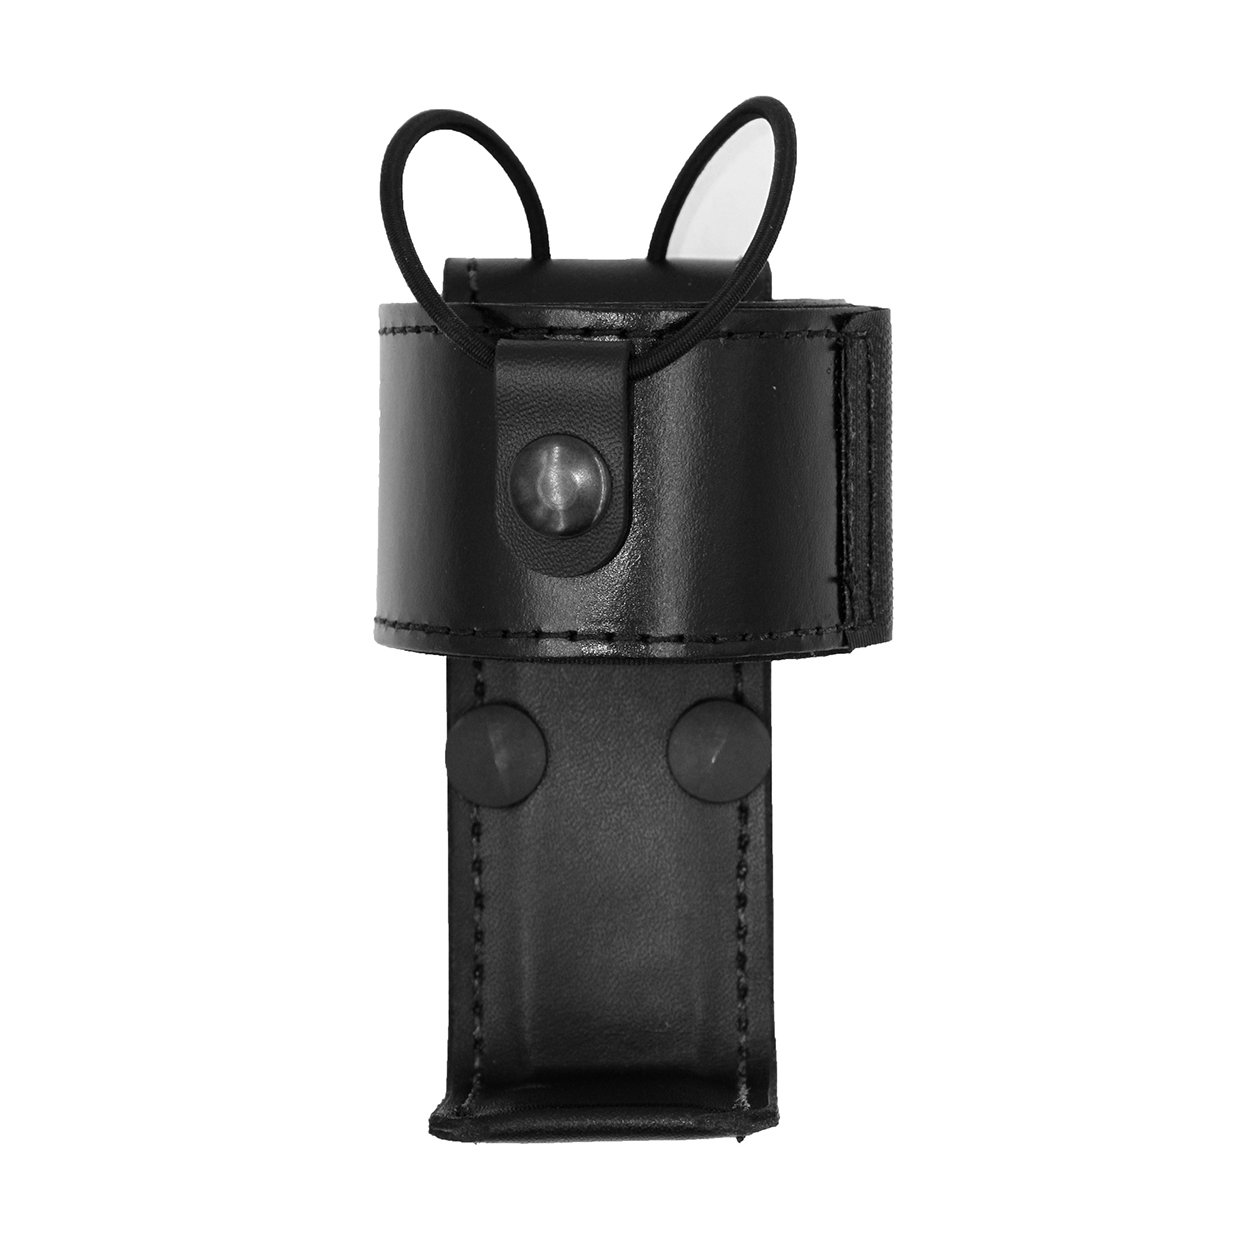 Aker Leather 588U Radio Holder, Universal by Aker Leather